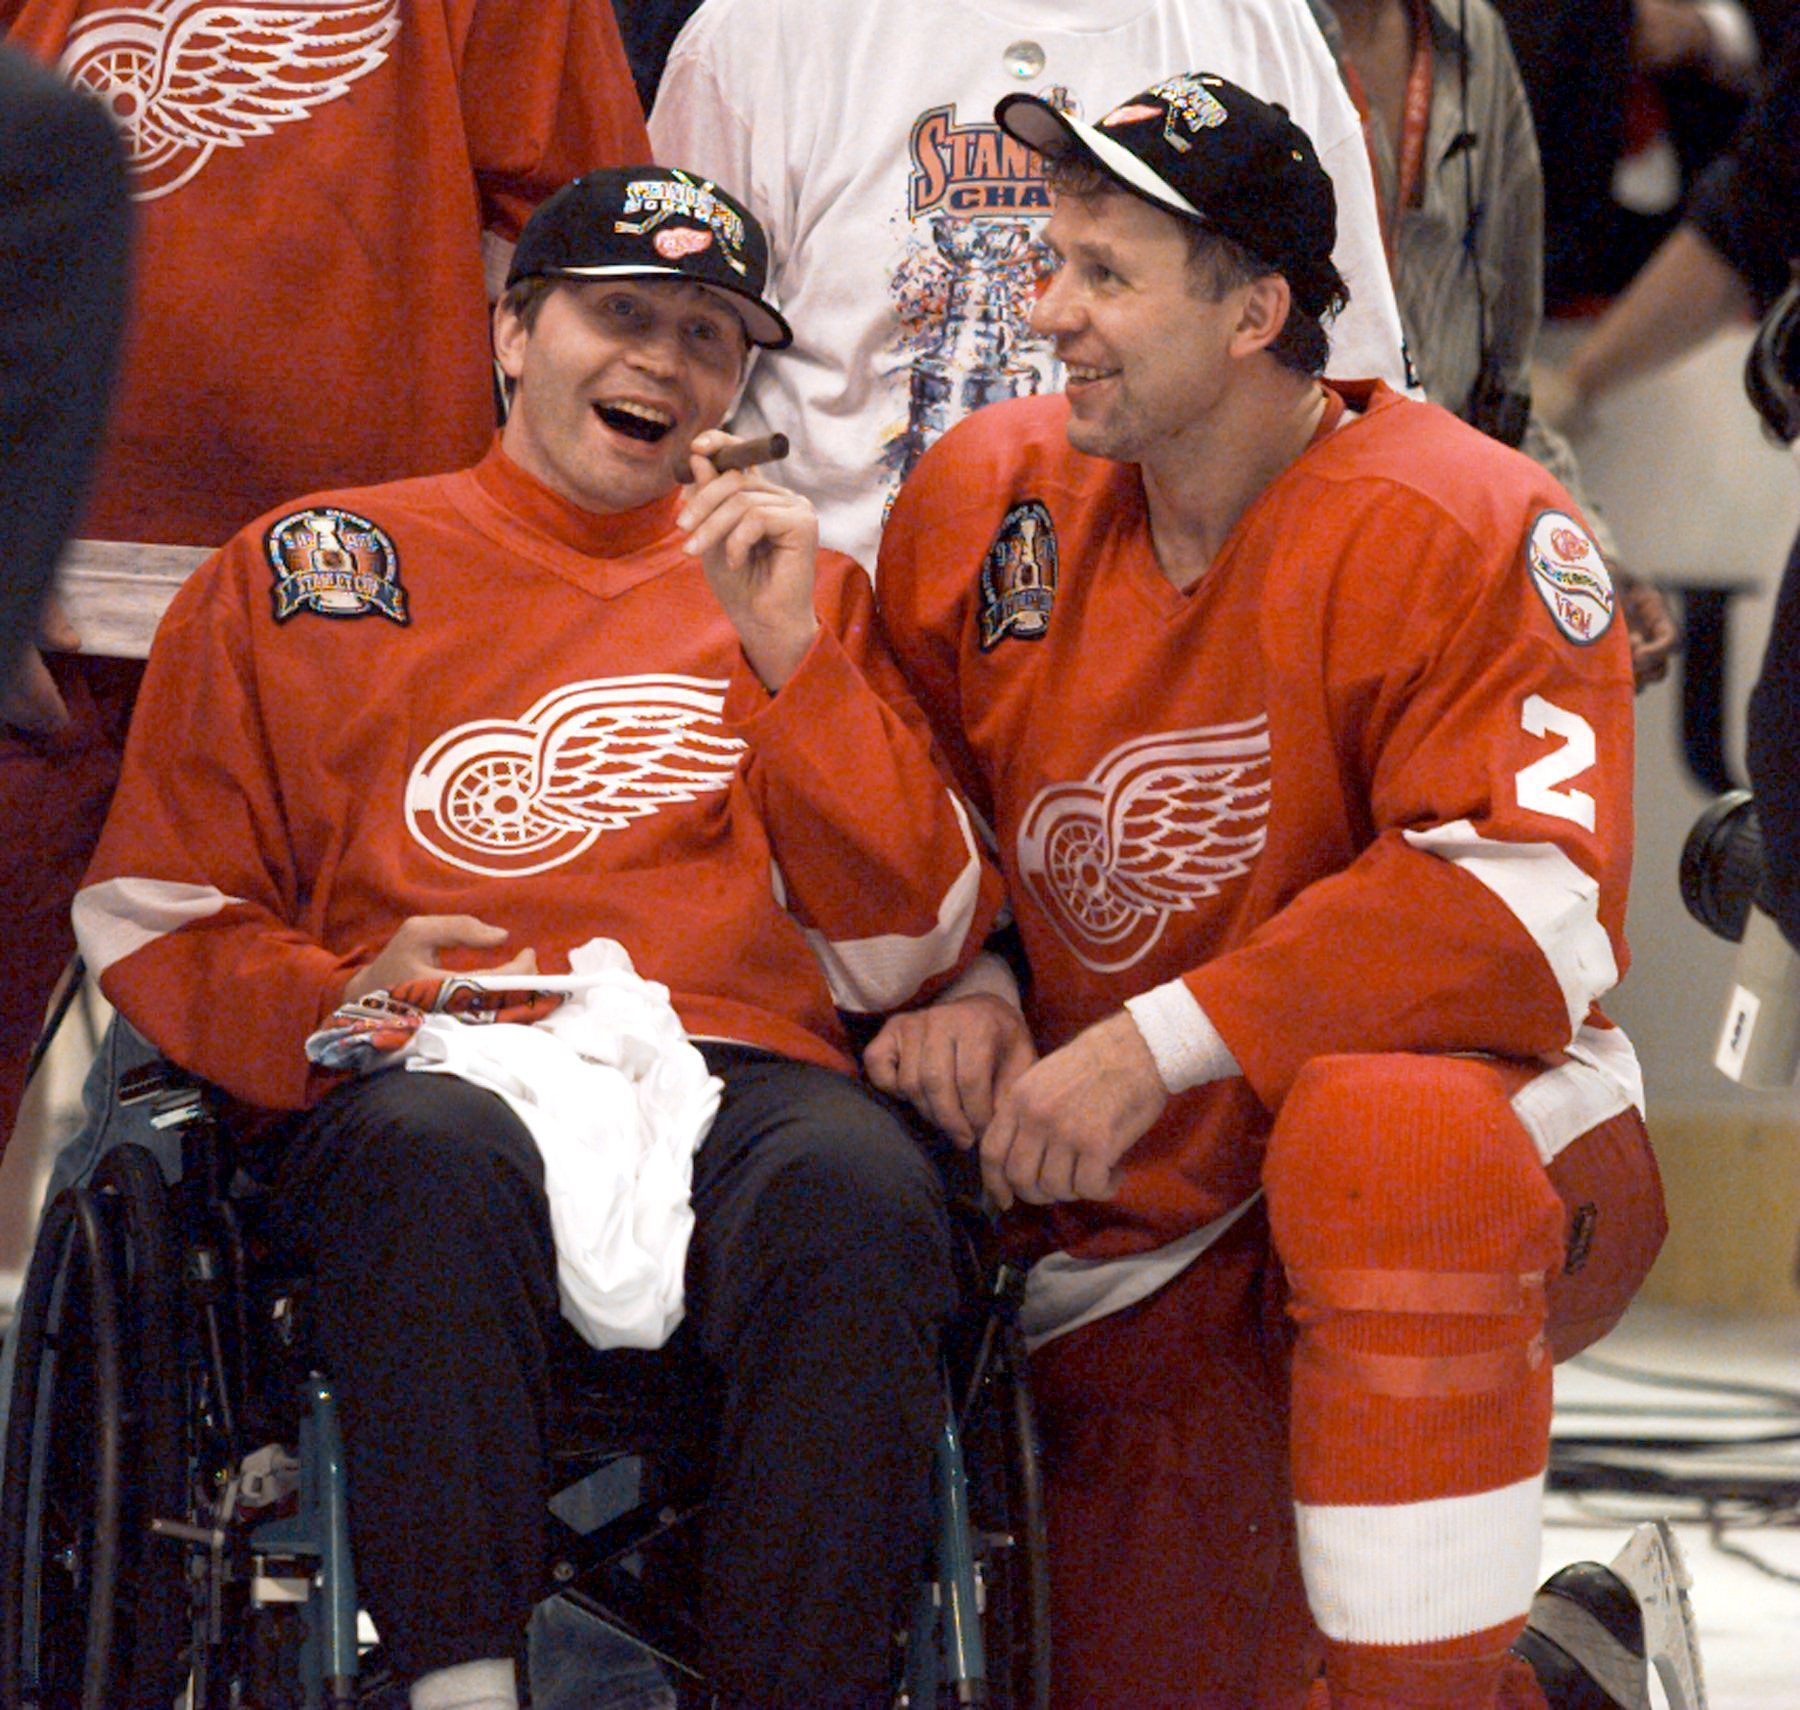 Vladimir Konstantinov and Viacheslav Fetisov on the ice after winning the Stanley Cup in Washington, D.C. Tuesday, June 16, 1998.